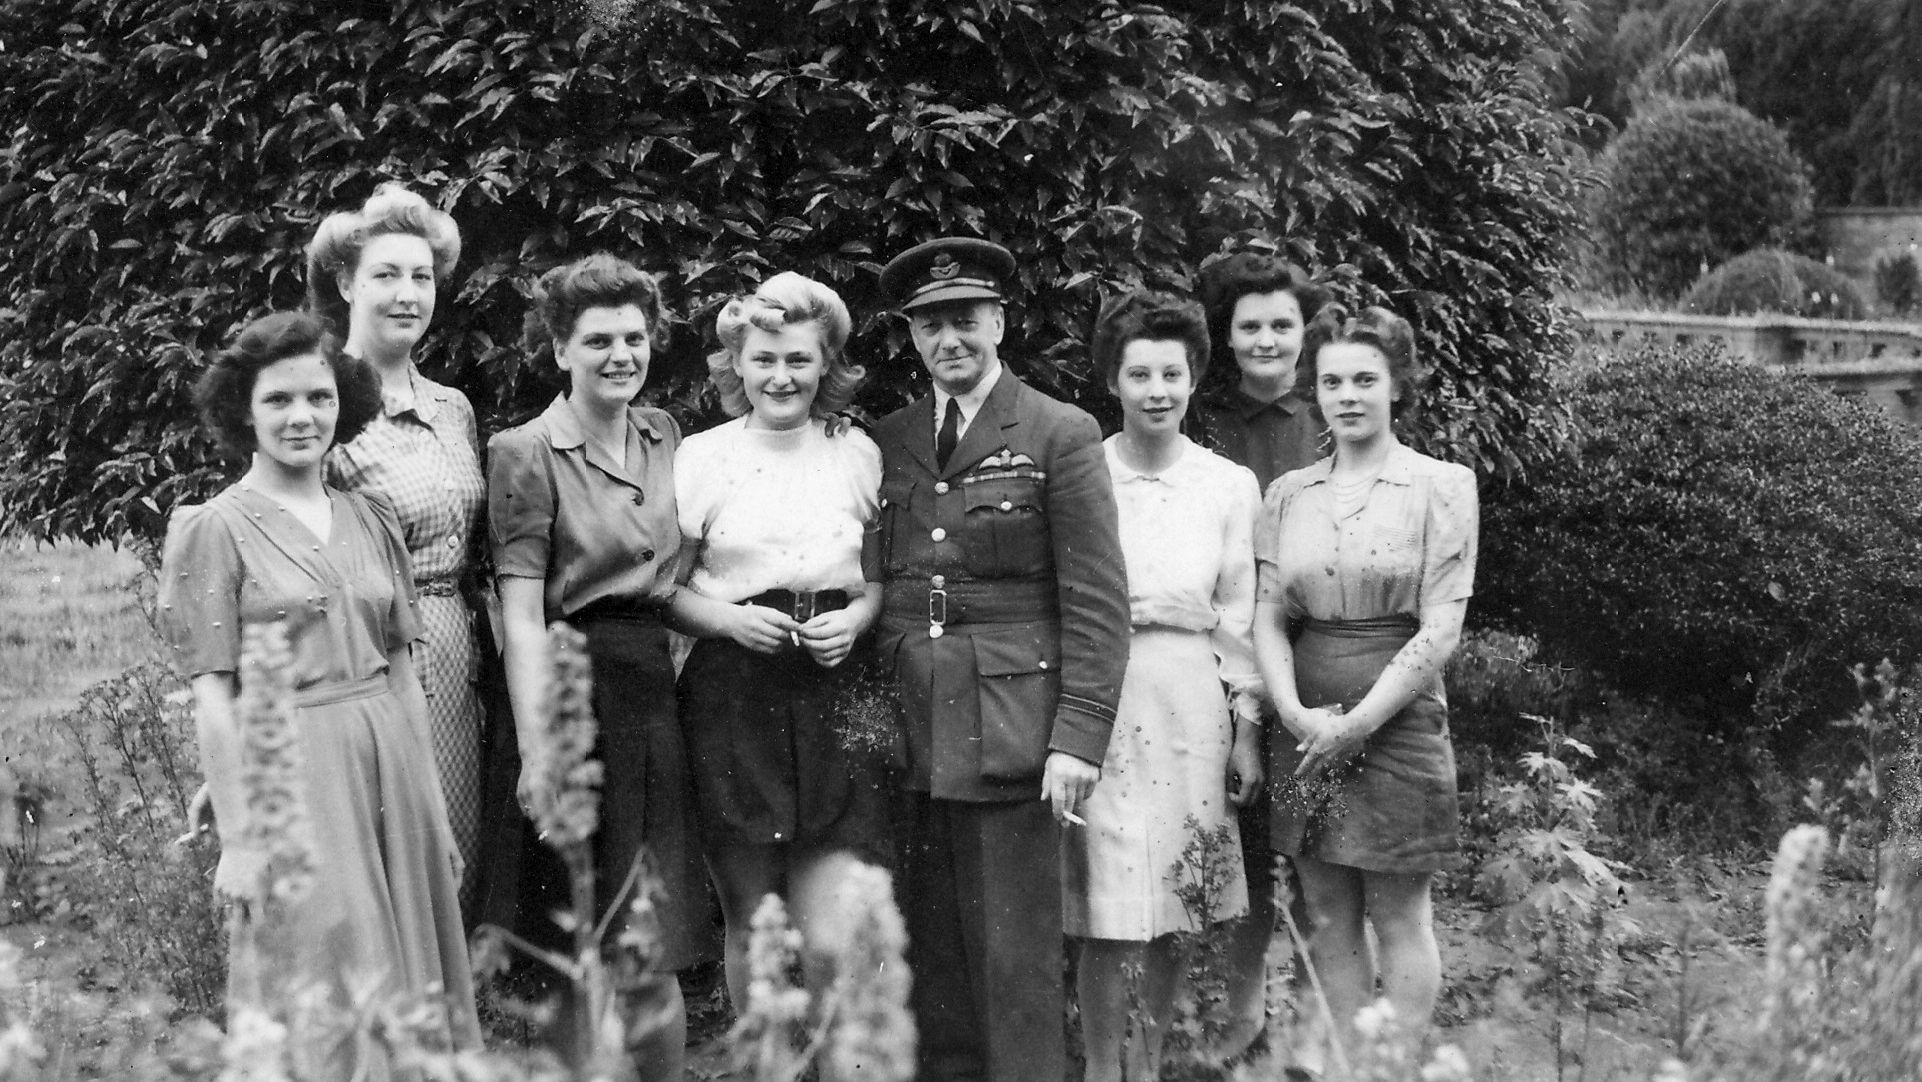 1940 S Hairstyles And Fashions Photograph Taken At Easton